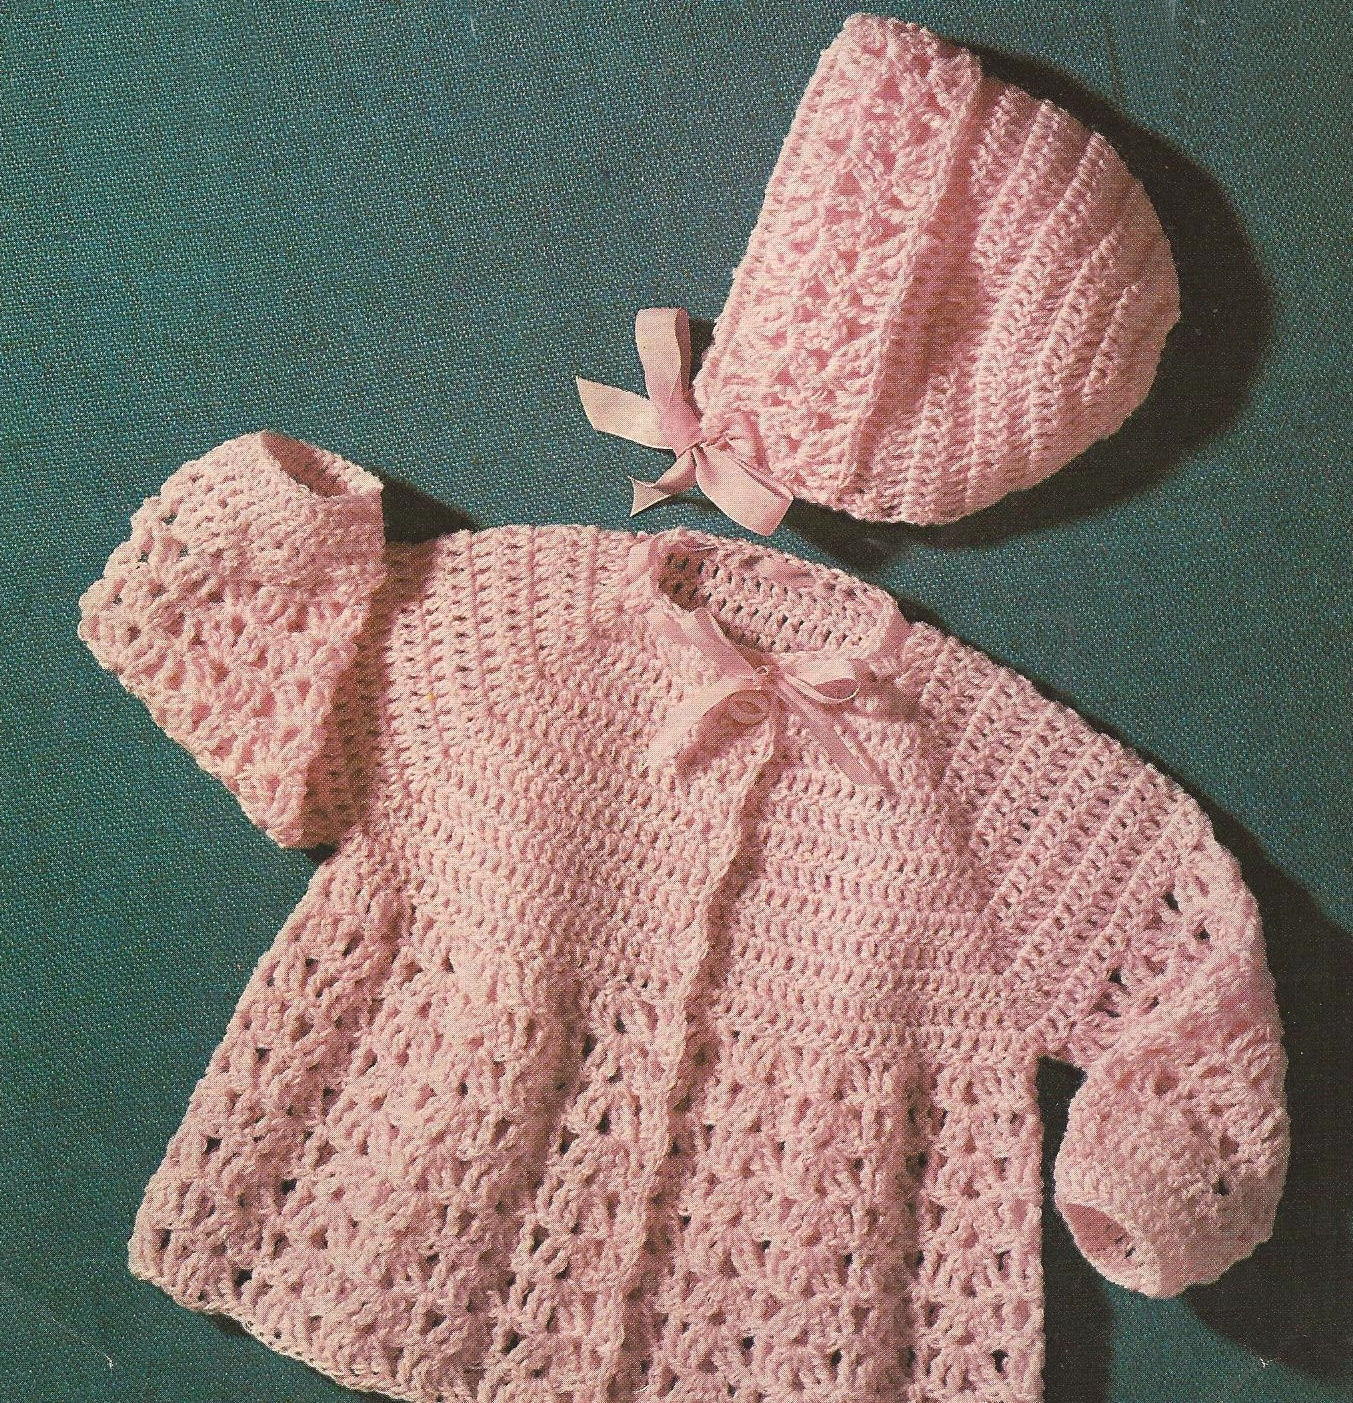 Crochet Baby Coat Pattern : 301 Moved Permanently